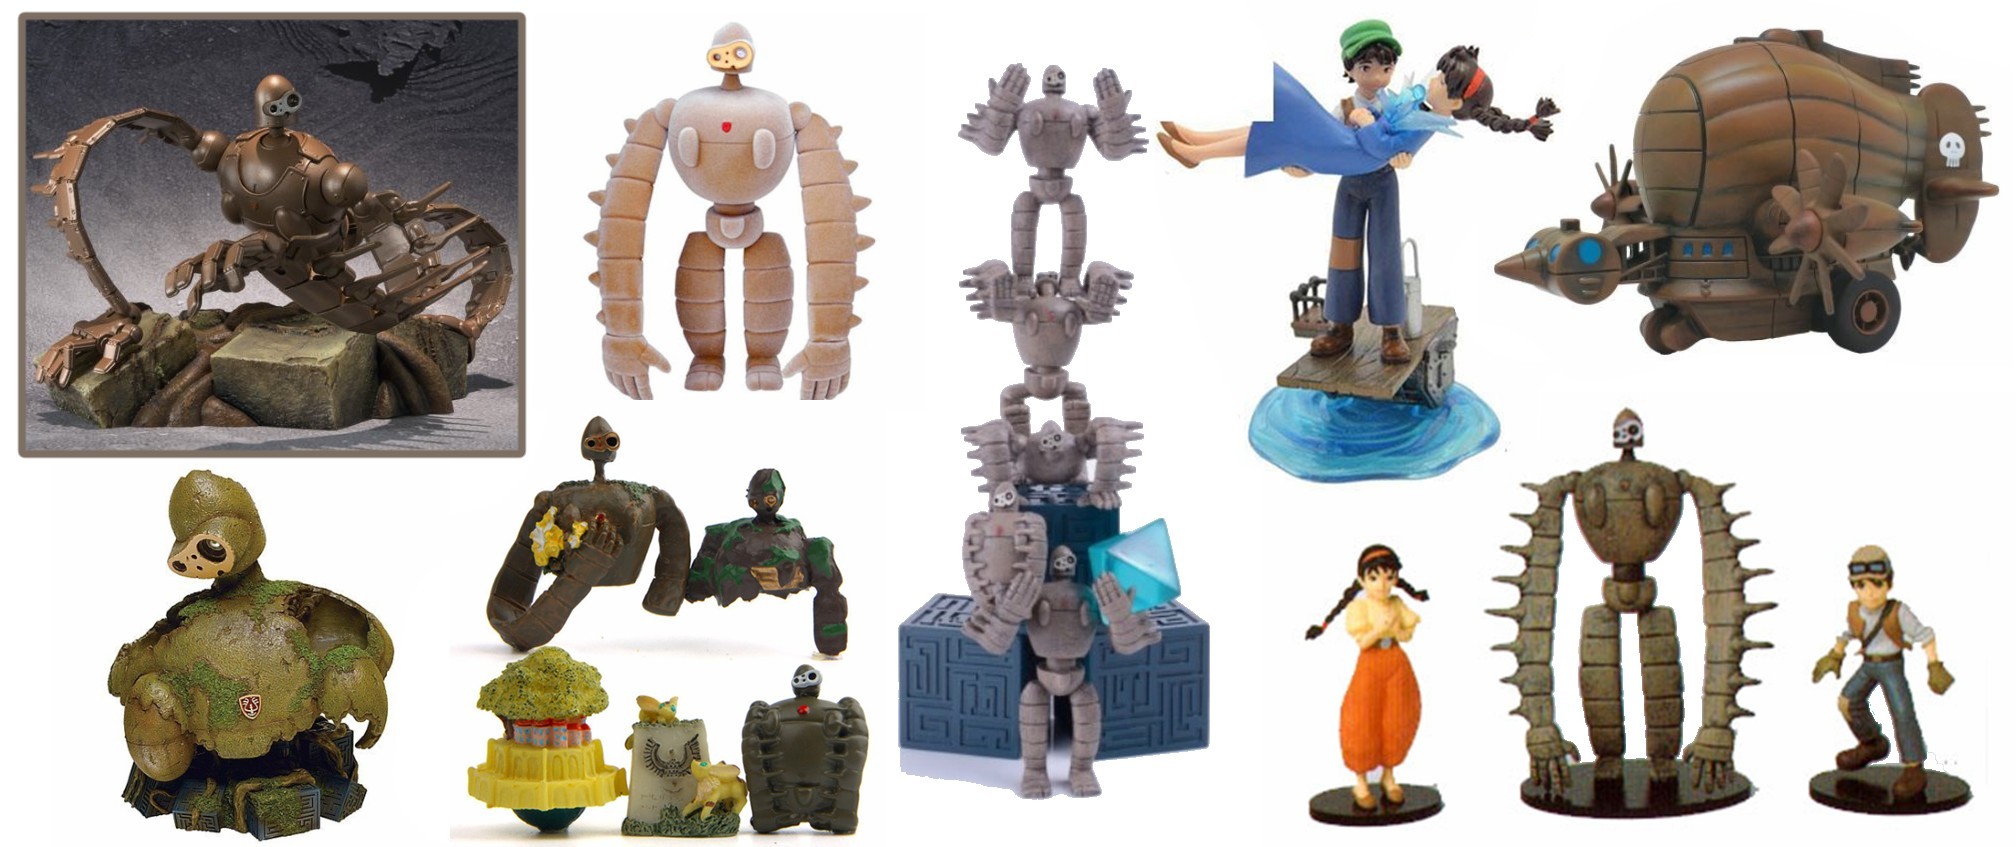 Castle in the Sky Figurines